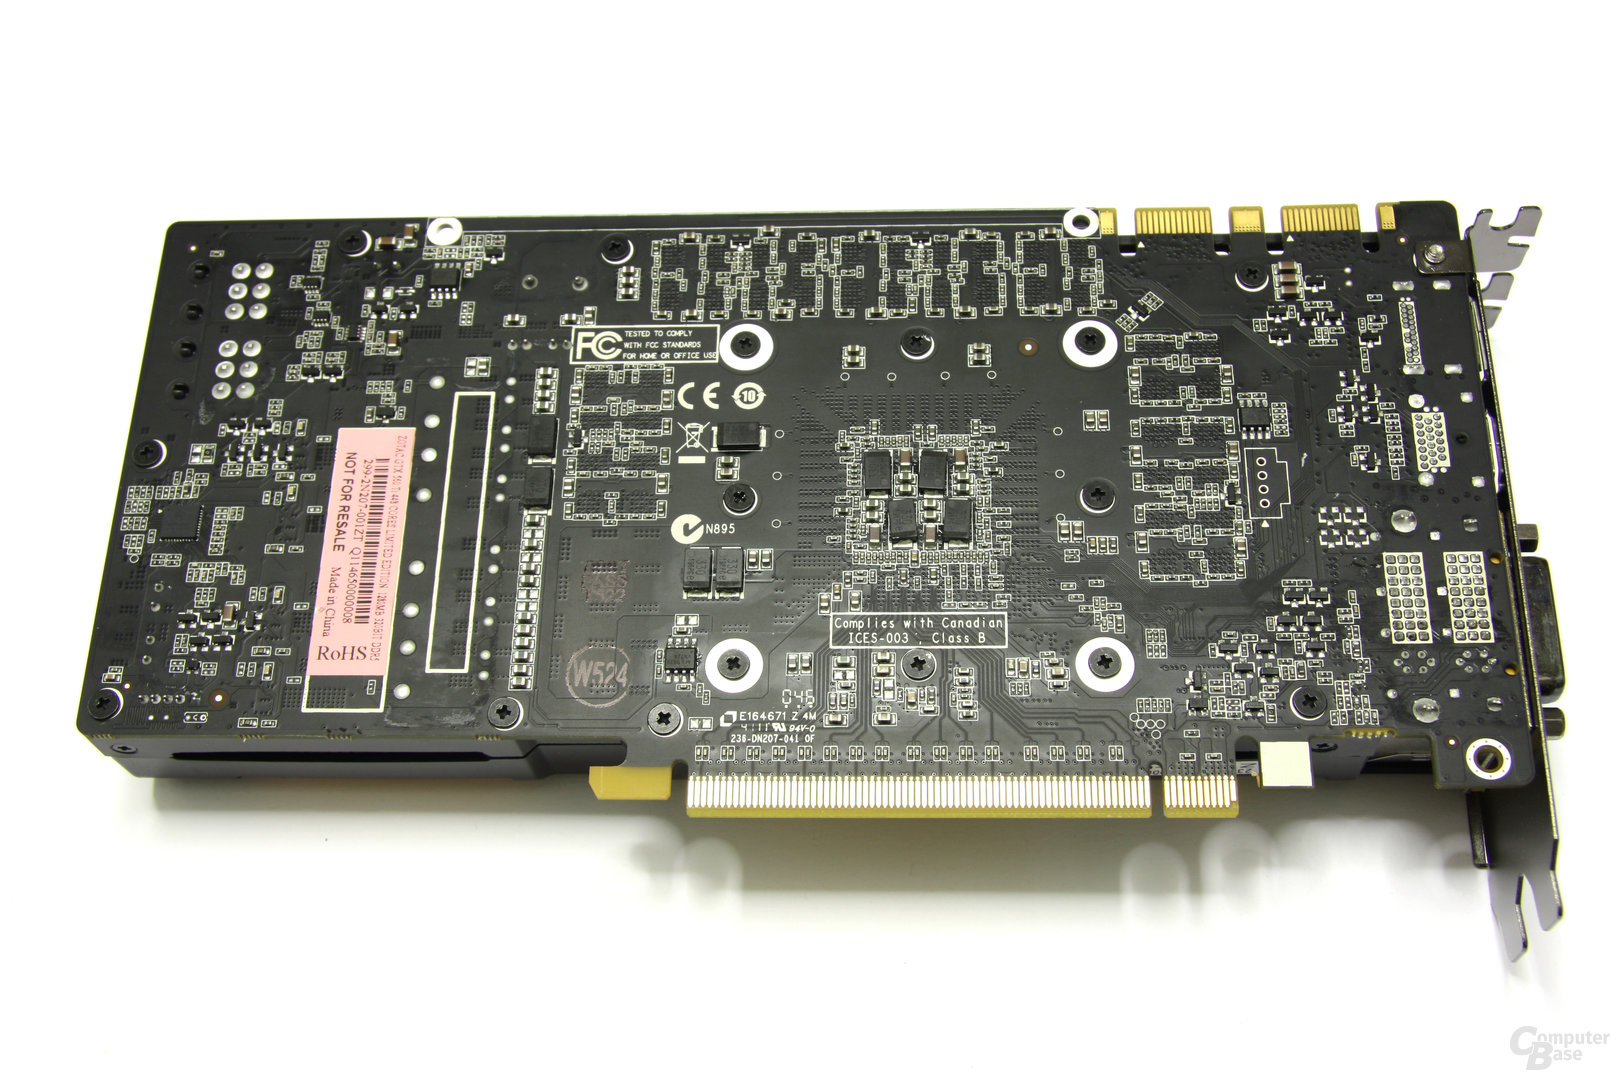 GeForce GTX 560 Ti 448 Core LE Rückseite